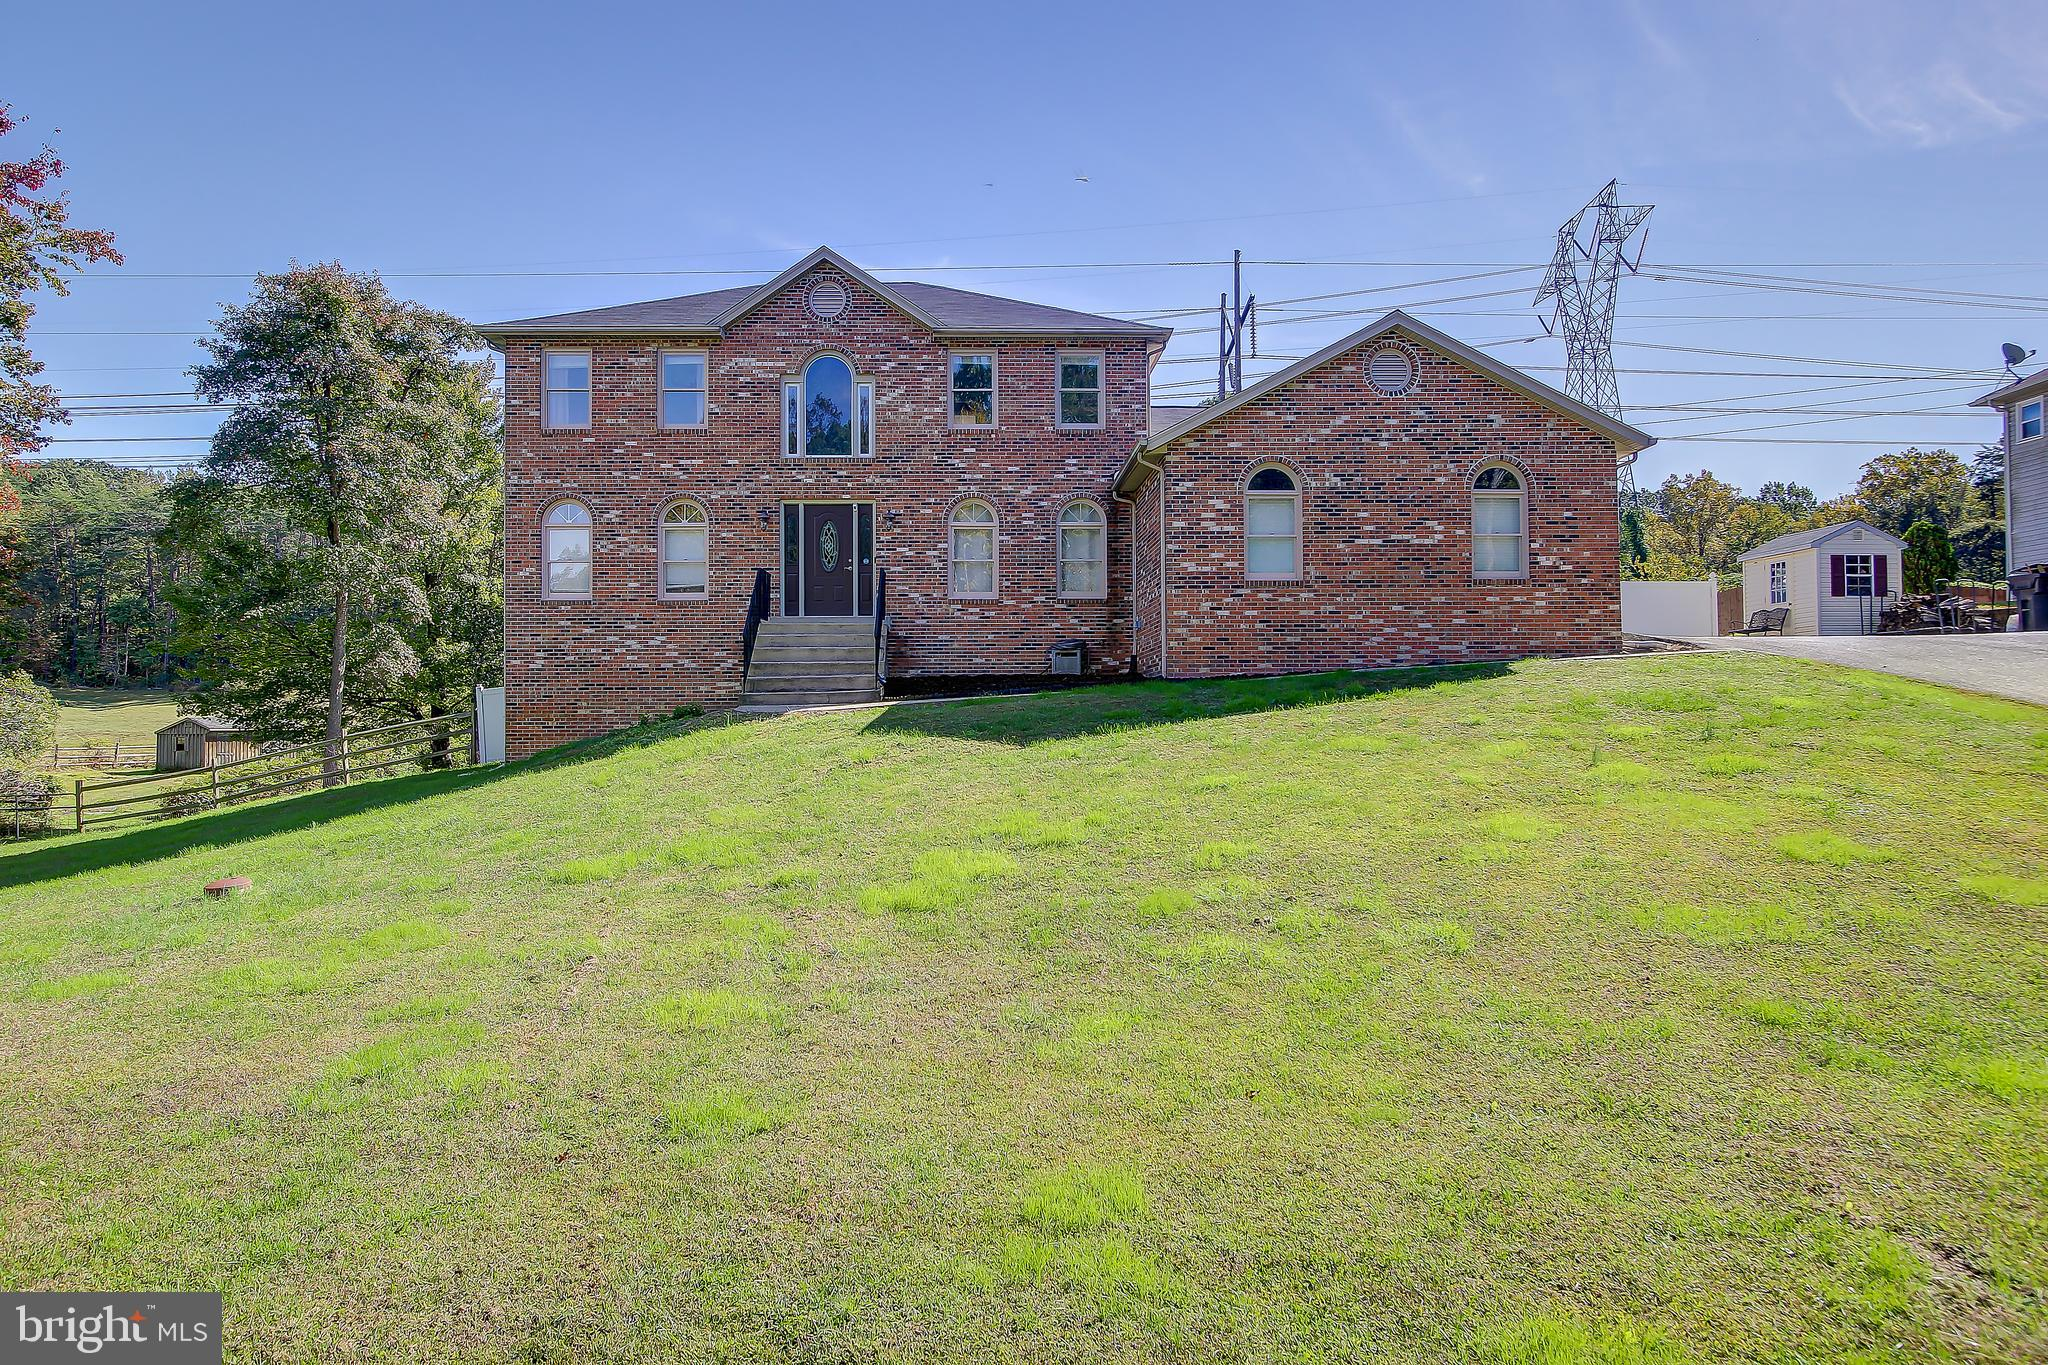 Don't miss this rare opportunity before it's gone! This beautiful 4 bedroom/3 bathroom brick front colonial has a lot of qualities you just won't see everyday in this market. Some of the more notable features include... Both HVAC systems were replaced in 2019, Heated inground pool, 1.46 acre lot backing to unbuildable land, 2 car side load garage while being located in a small neighborhood with a private feel and NO HOA yet still close to everything.  Upon entering the front door, you'll find a large two story foyer with beautiful hardwood floors. Just inside..  there is a convenient main level bedroom with a full bathroom perfect for guests or a family member who wants to avoid stairs. The open kitchen with its cherry cabinets, Corian countertops, tile flooring and island is just off of the good sized family room with vaulted ceilings, skylights and a wood burning fireplace. Direct access from the family room to the rear deck overlooking the beautiful heated pool, patio and fenced in yard; makes it the perfect location for get togethers or just relaxing evenings with the family. The main level also offers a formal dining room with a large bay window with no shortage of natural light and a formal living room that could be used as an office. The upper level has tons of natural light with its Palladian window located above the foyer and skylights in both bathrooms. Your spacious owner's bedroom with a walk-in closet and large owner's bath boasts a floor to ceiling tile shower and huge soaking tub. Also on the upper level you'll find two additional great sized bedrooms and another full bathroom. The entire upper level carpet including the stairs has been replaced and fresh paint in most areas. The large basement is framed and ready for drywall, but it could easily be re-designed to meet your family's specific needs or desires. Some possible options could include a 5th bedroom meeting code requirements with a window already in place, a large recreation room, theater room or even an in-law suite. Or.. you could generate monthly cash flow and lower your mortgage obligation by utilizing the separate side entrance to basements for tenants.   All of this while still being only minutes away from I-95 access, close to commuter lots, VRE, shopping, dining options and the Hospital is a rare opportunity! Open house is scheduled for 11am-3pm on Sunday 10/18/20.